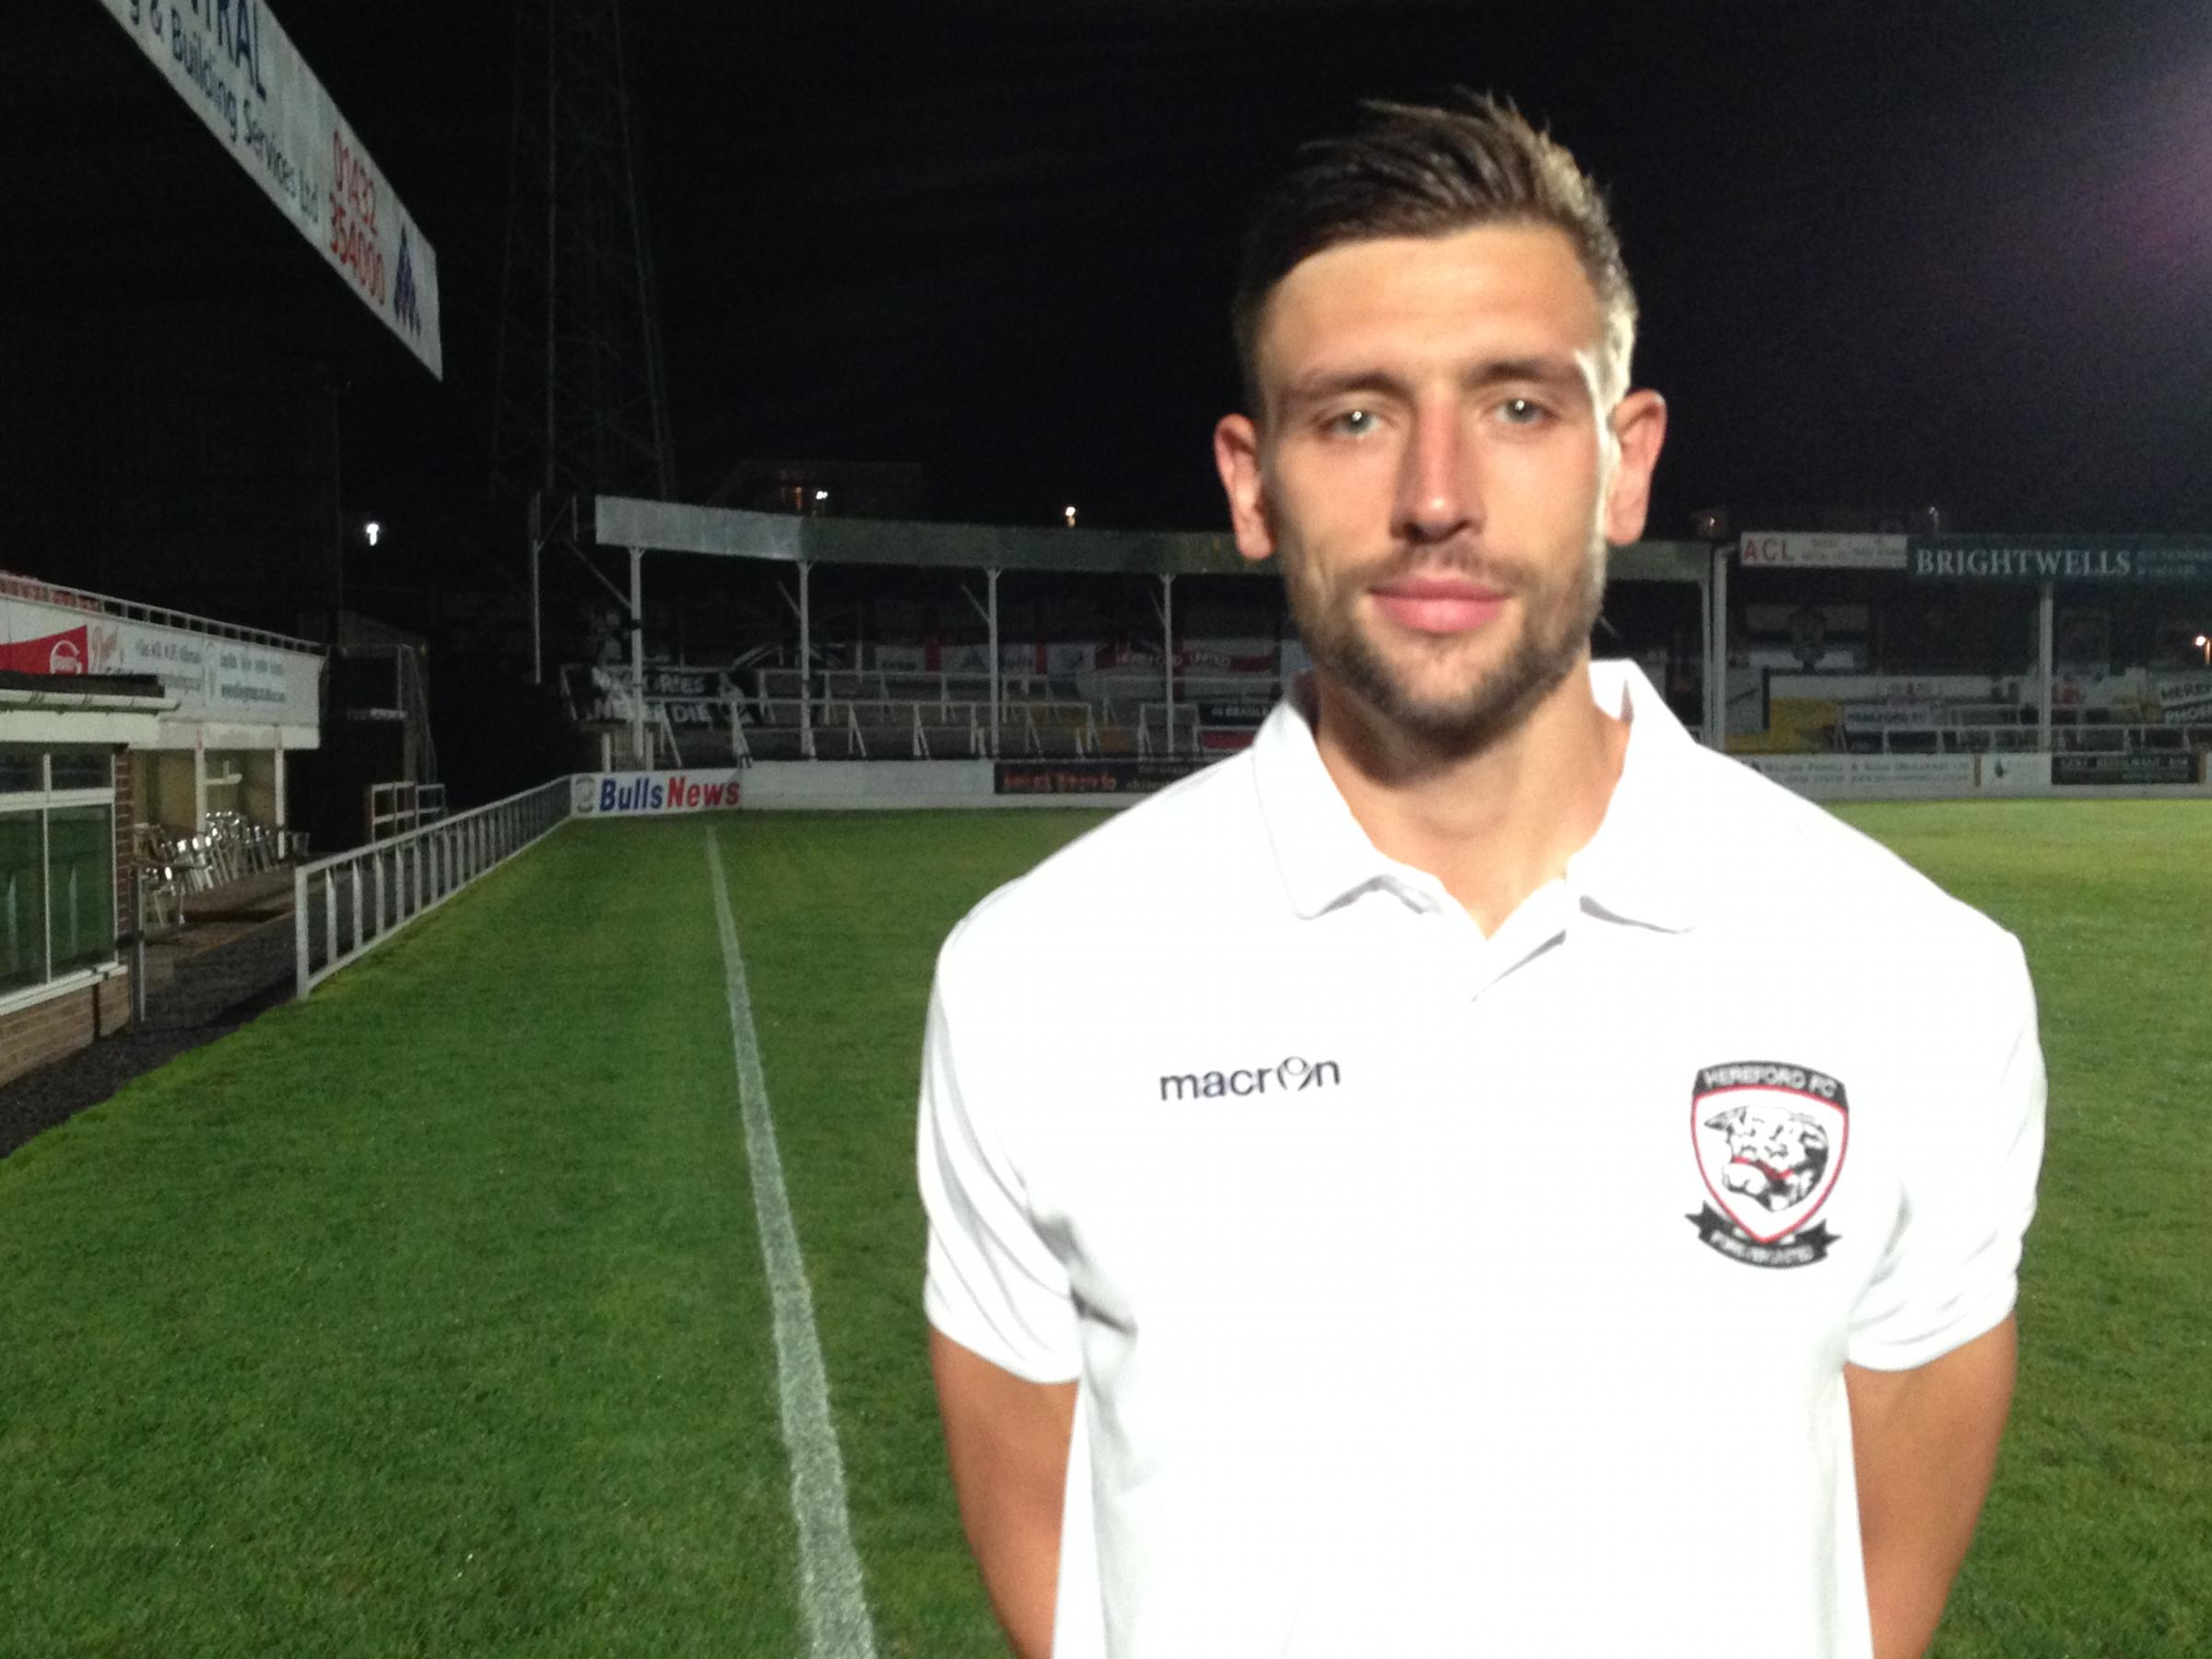 Mike McGrath scores winner for Hereford FC at Mangotsfield United    Hereford Times